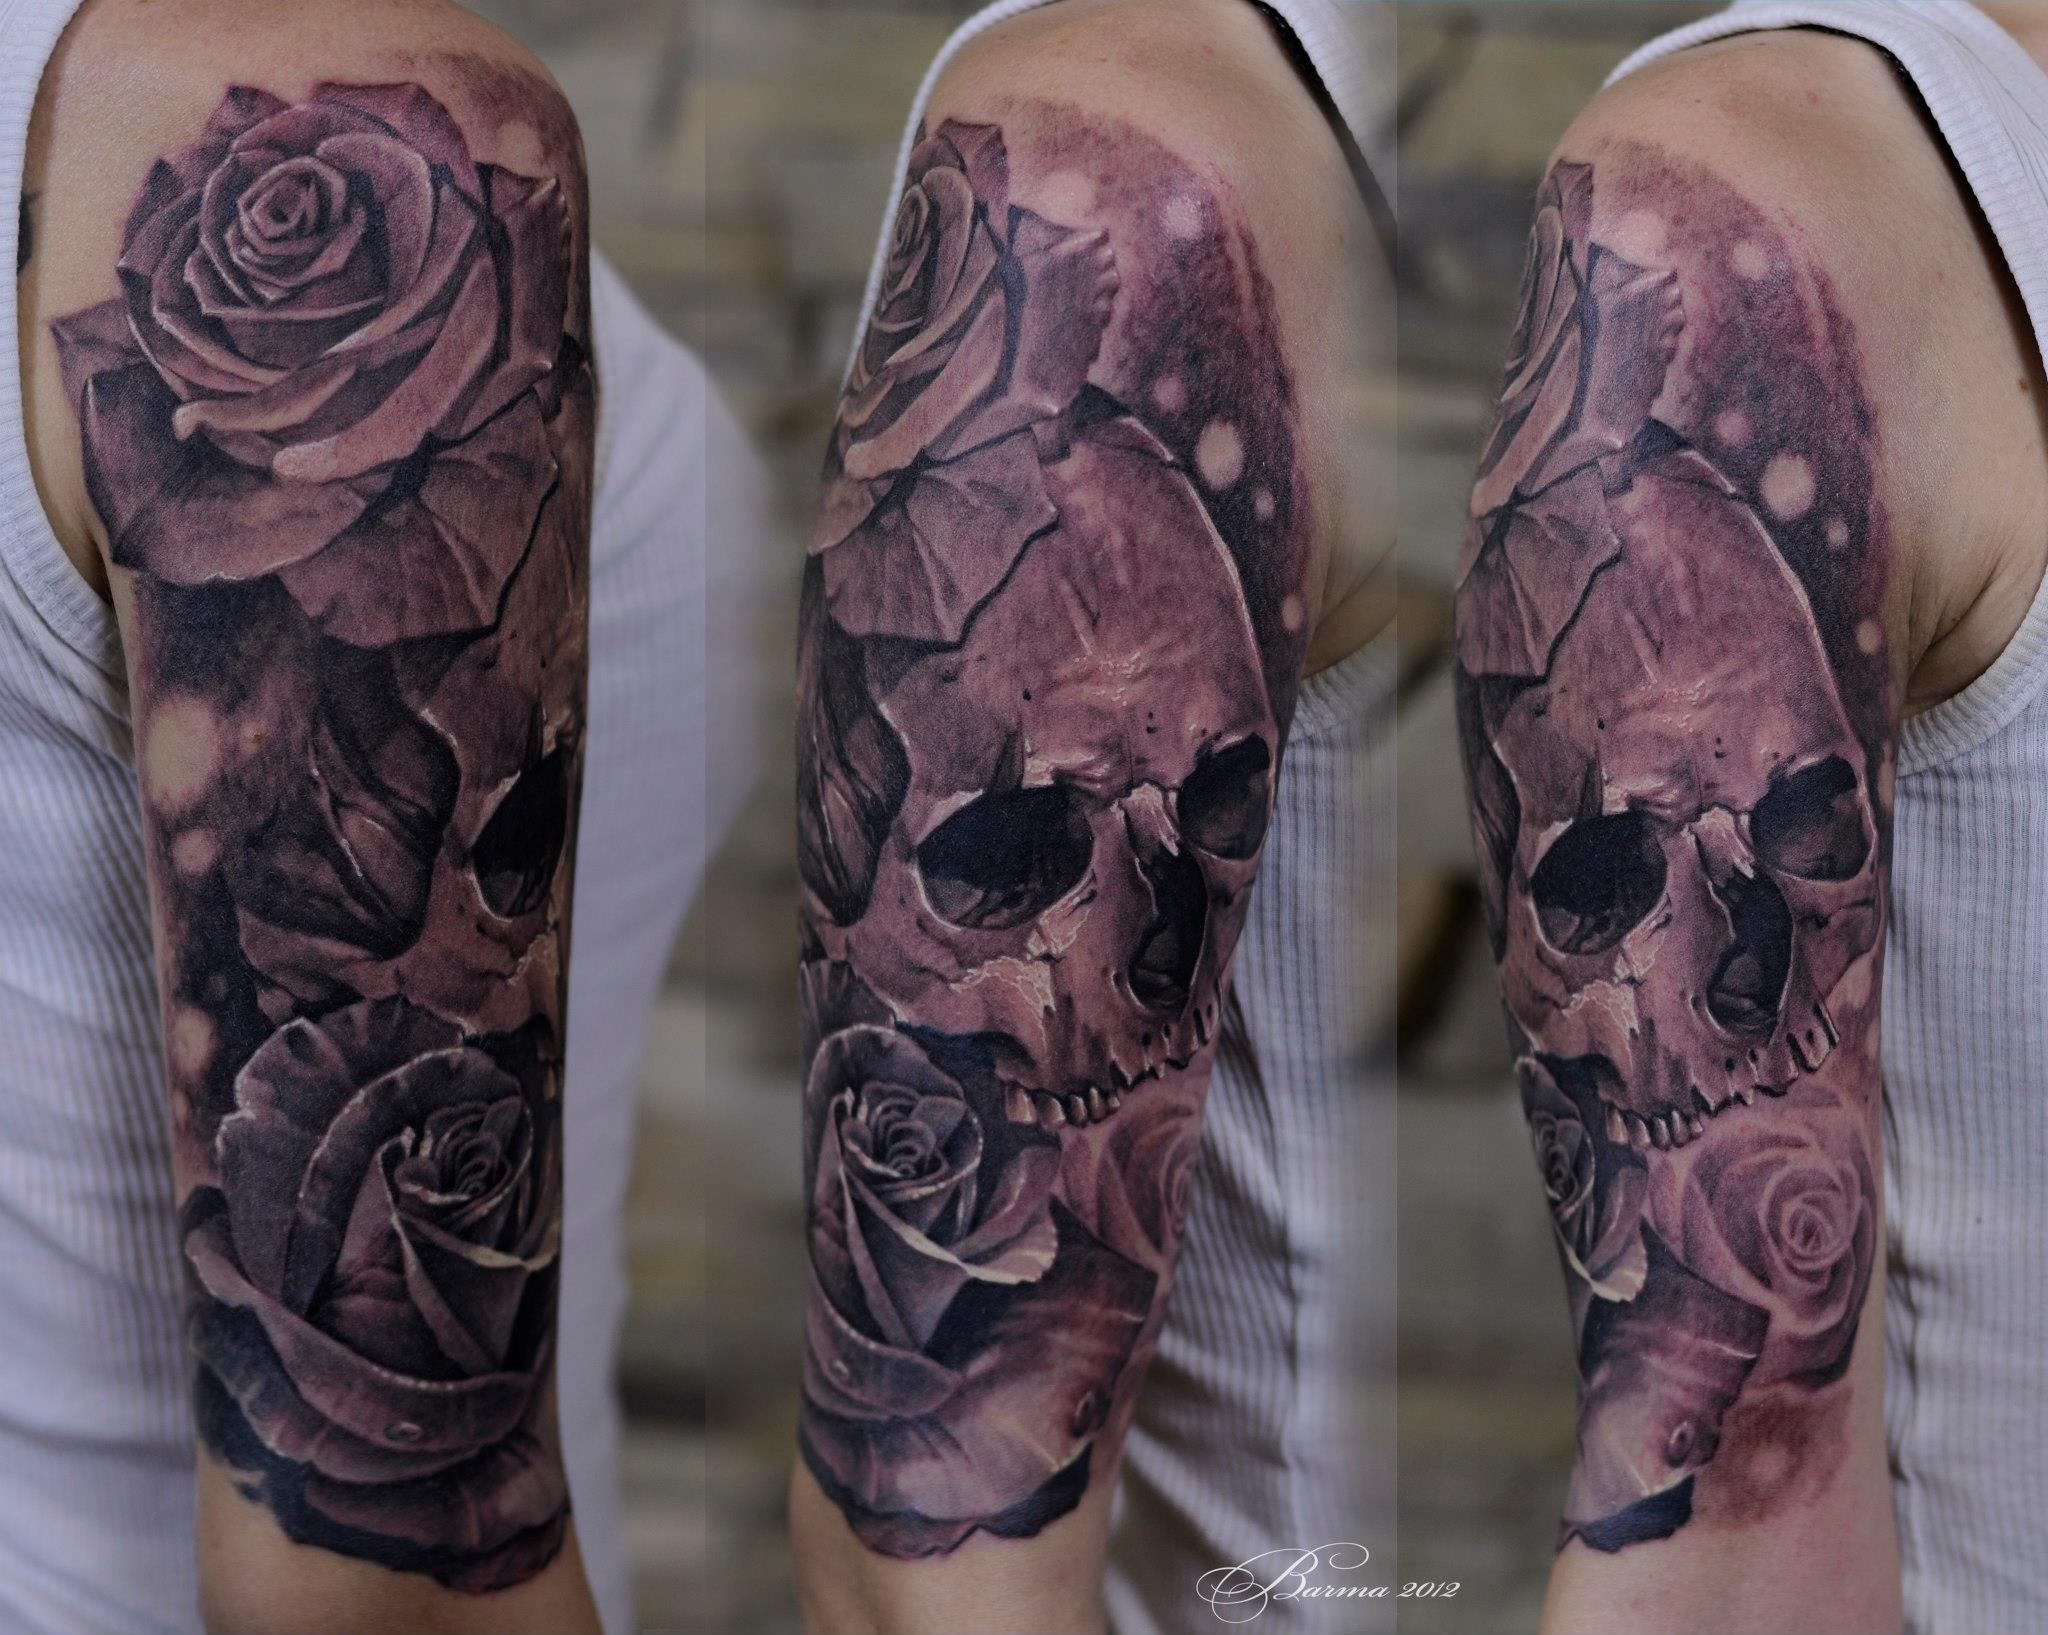 Great skull and roses tattoo on shoulder